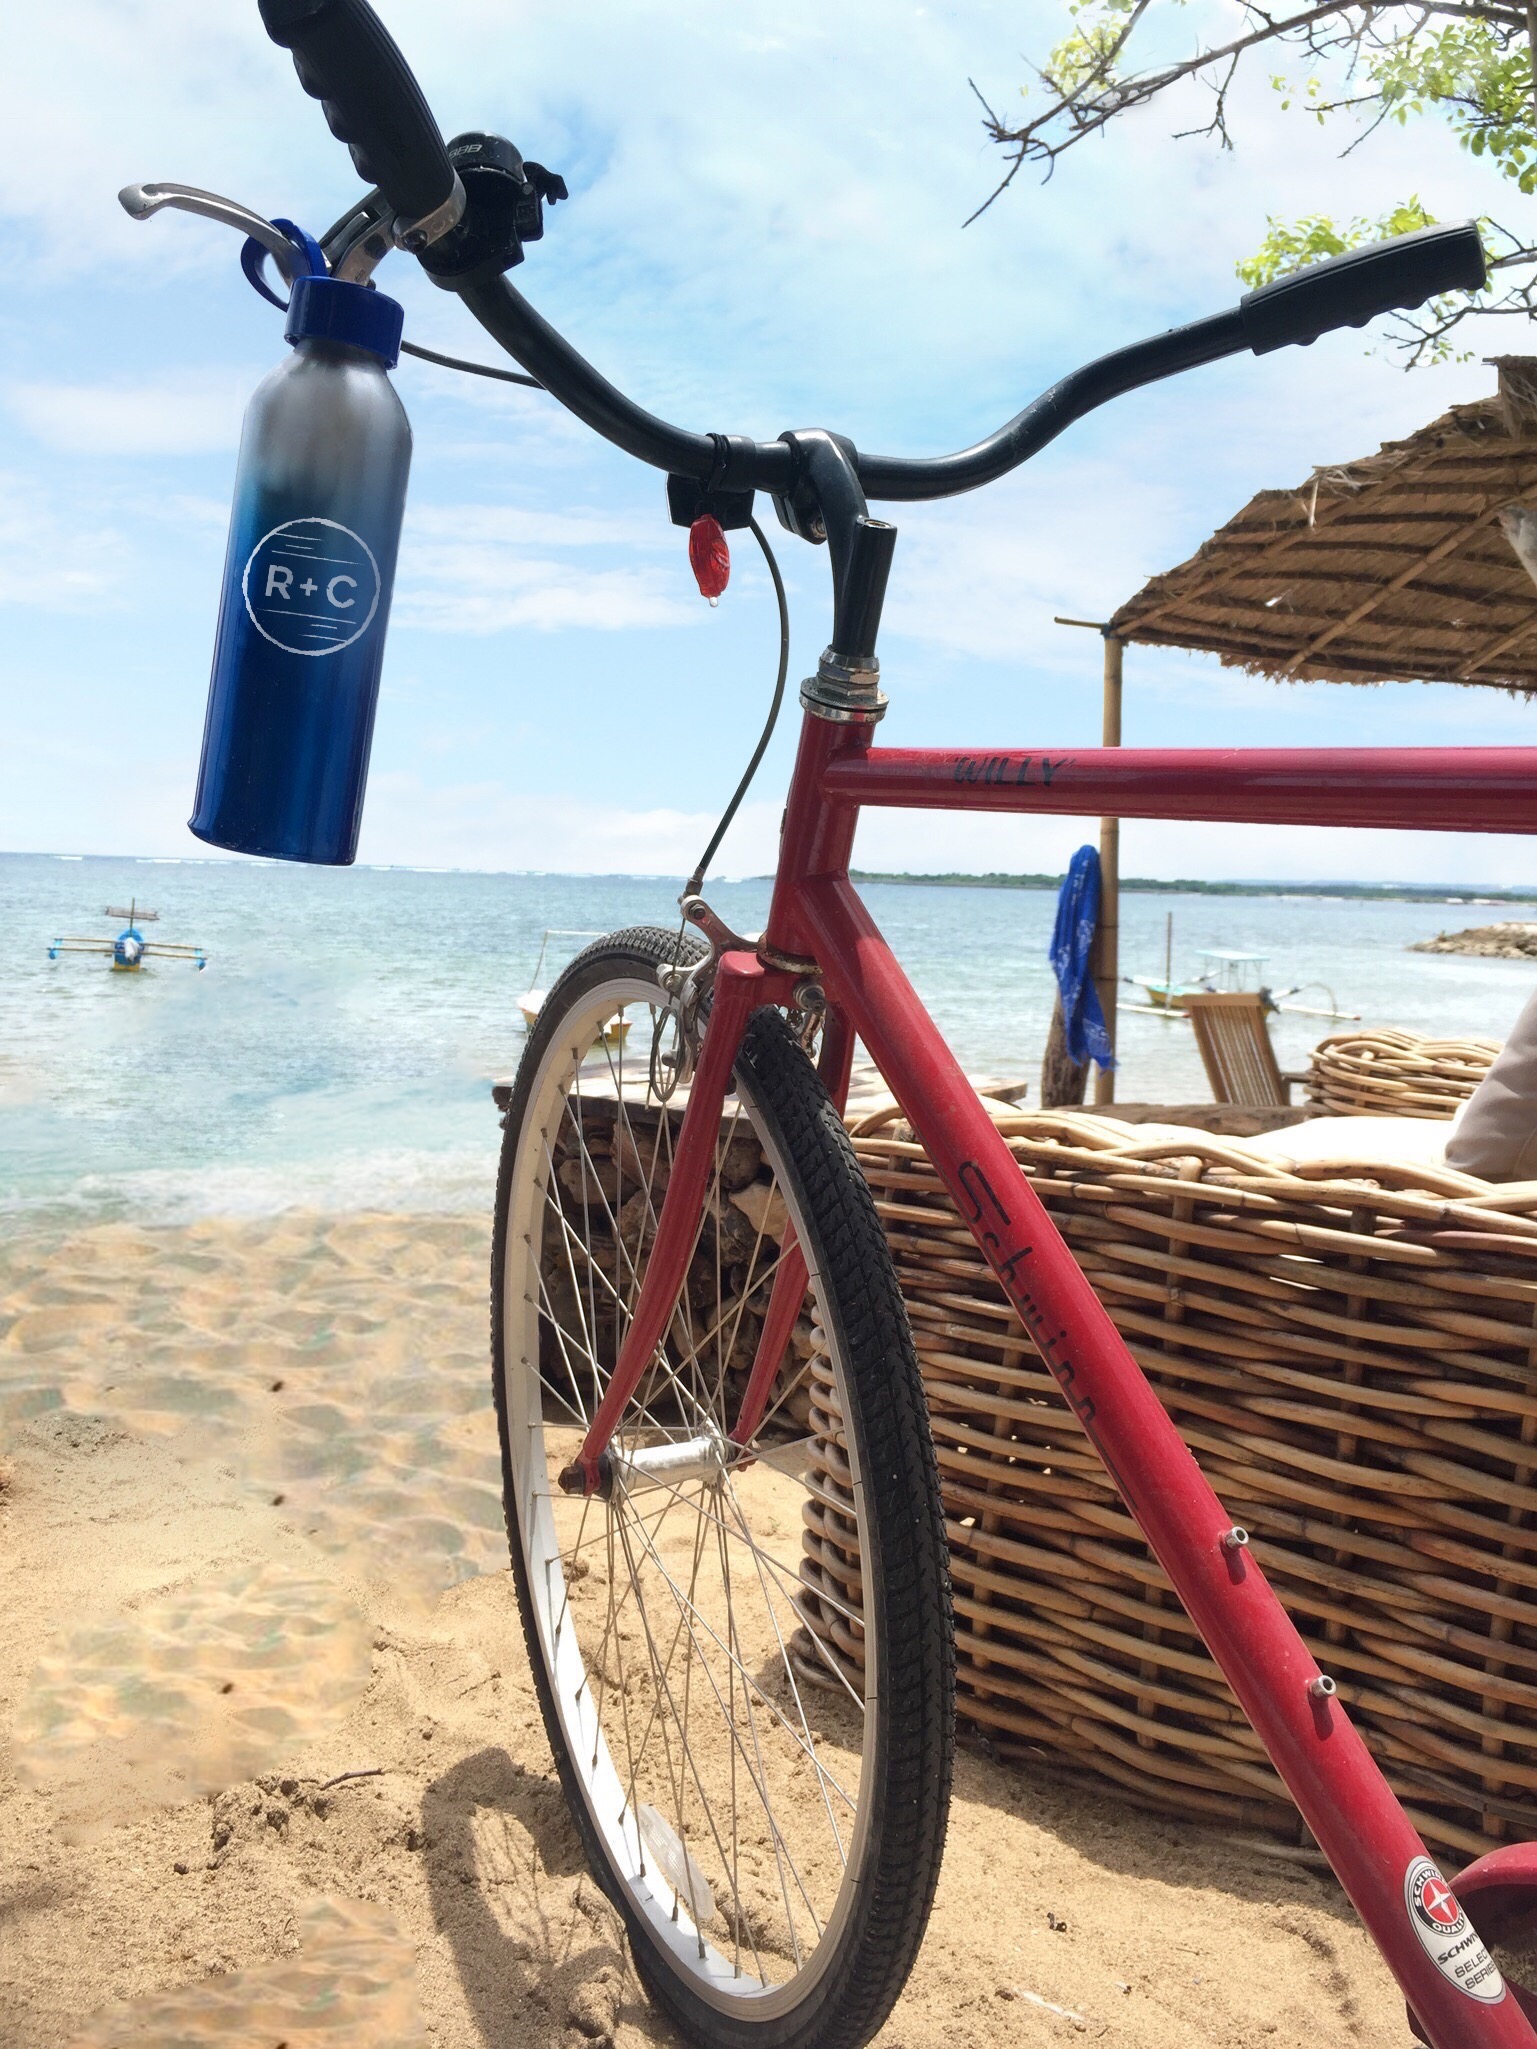 Biking every morning along Sanur Beach was the best way to start the day!